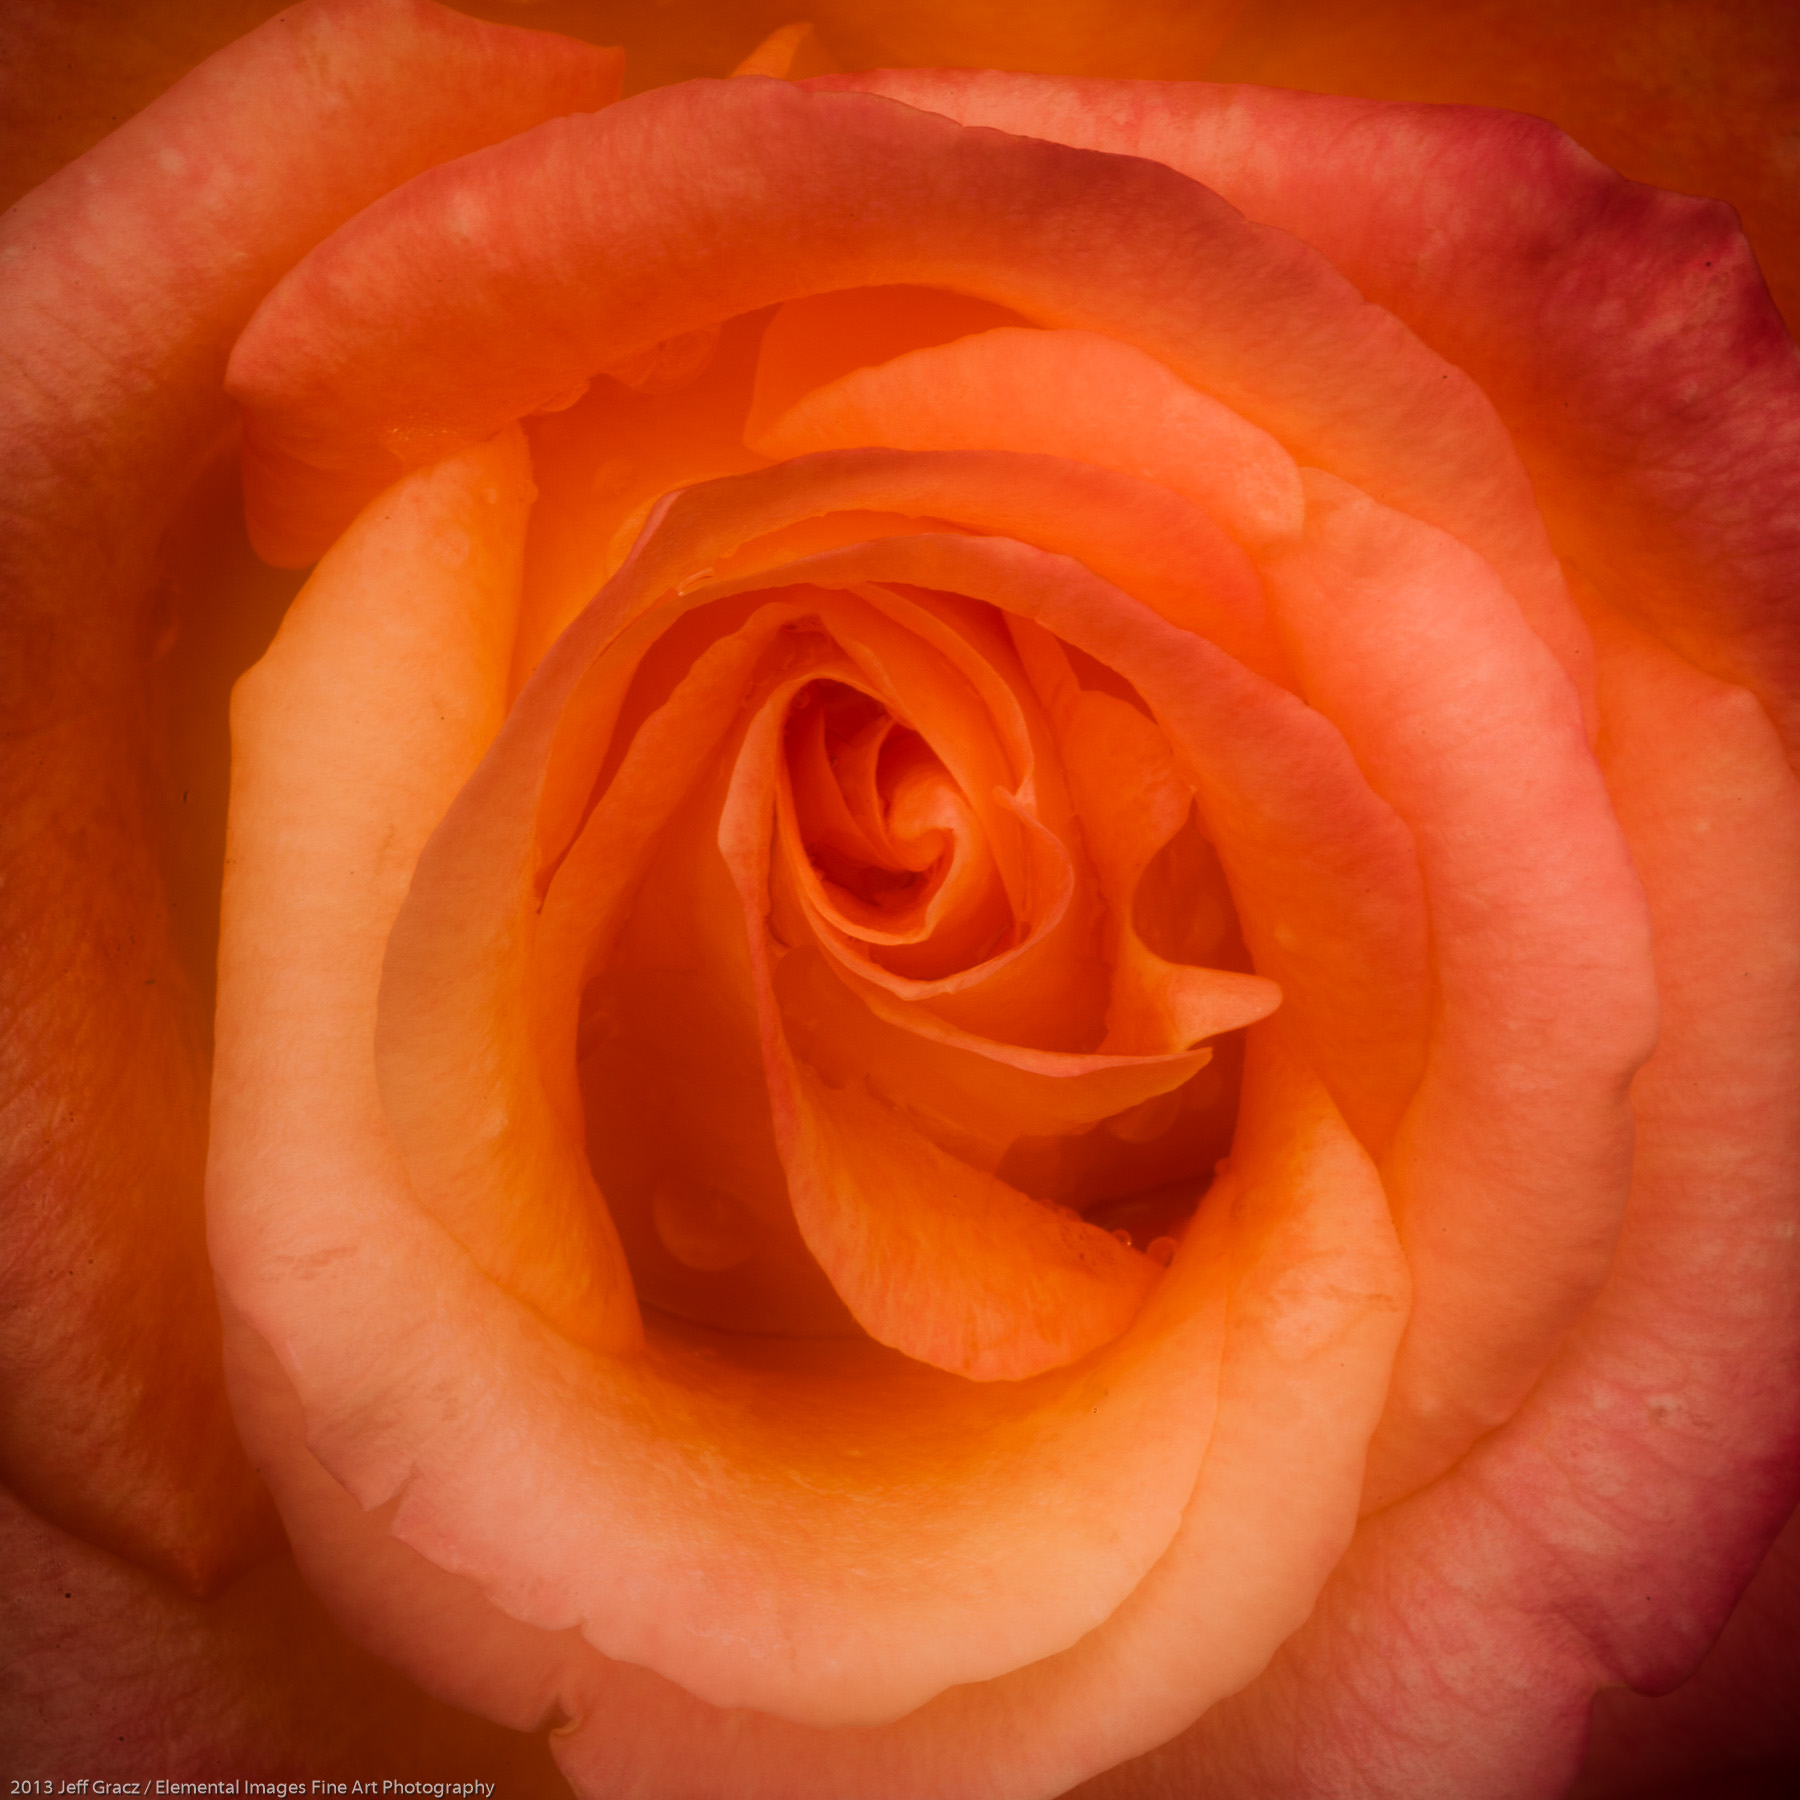 Roses LIII | Portland | OR | USA - © 2013 Jeff Gracz / Elemental Images Fine Art Photography - All Rights Reserved Worldwide